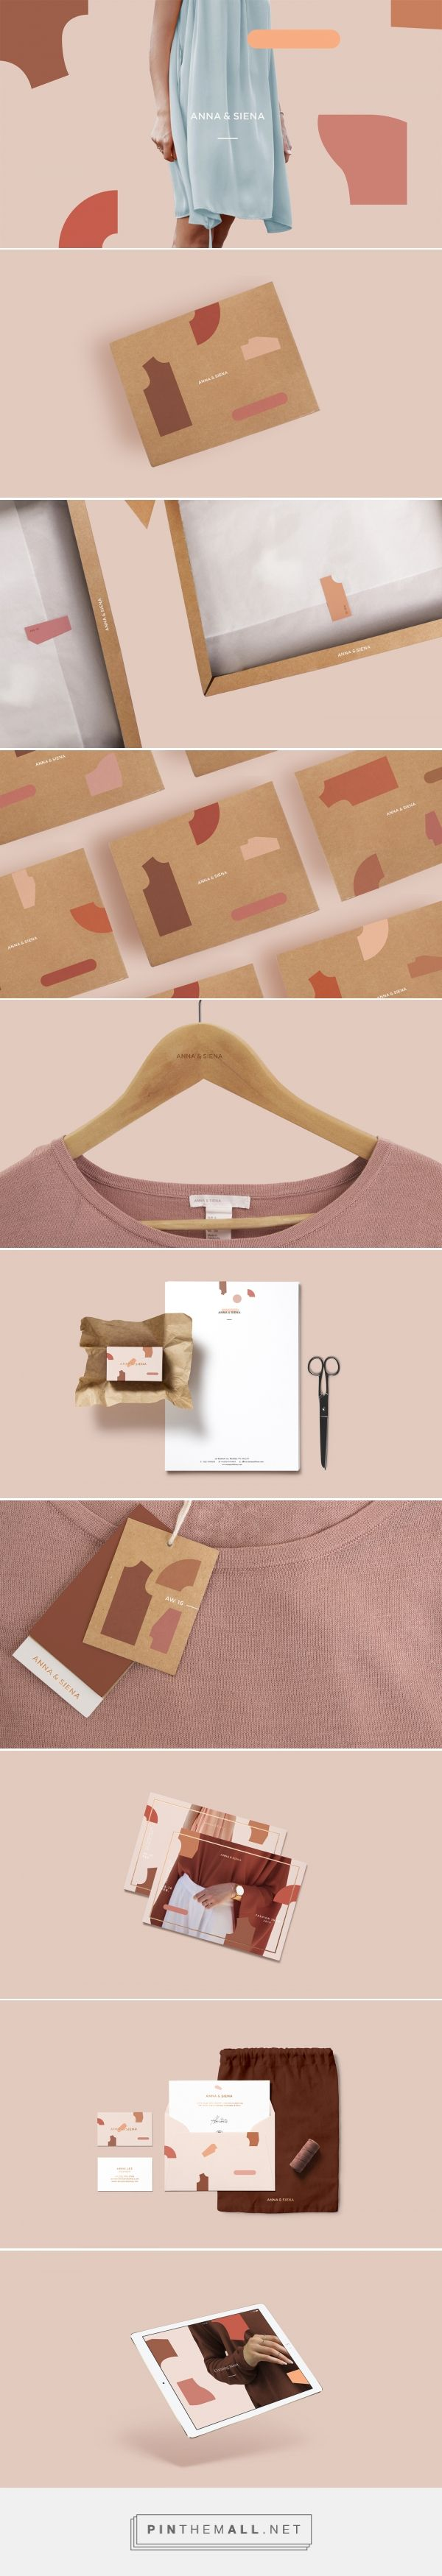 Anna & Siena Fashion Branding by Alaa Amra | Fivestar Branding Agency – Design and Branding Agency & Curated Inspiration Gallery